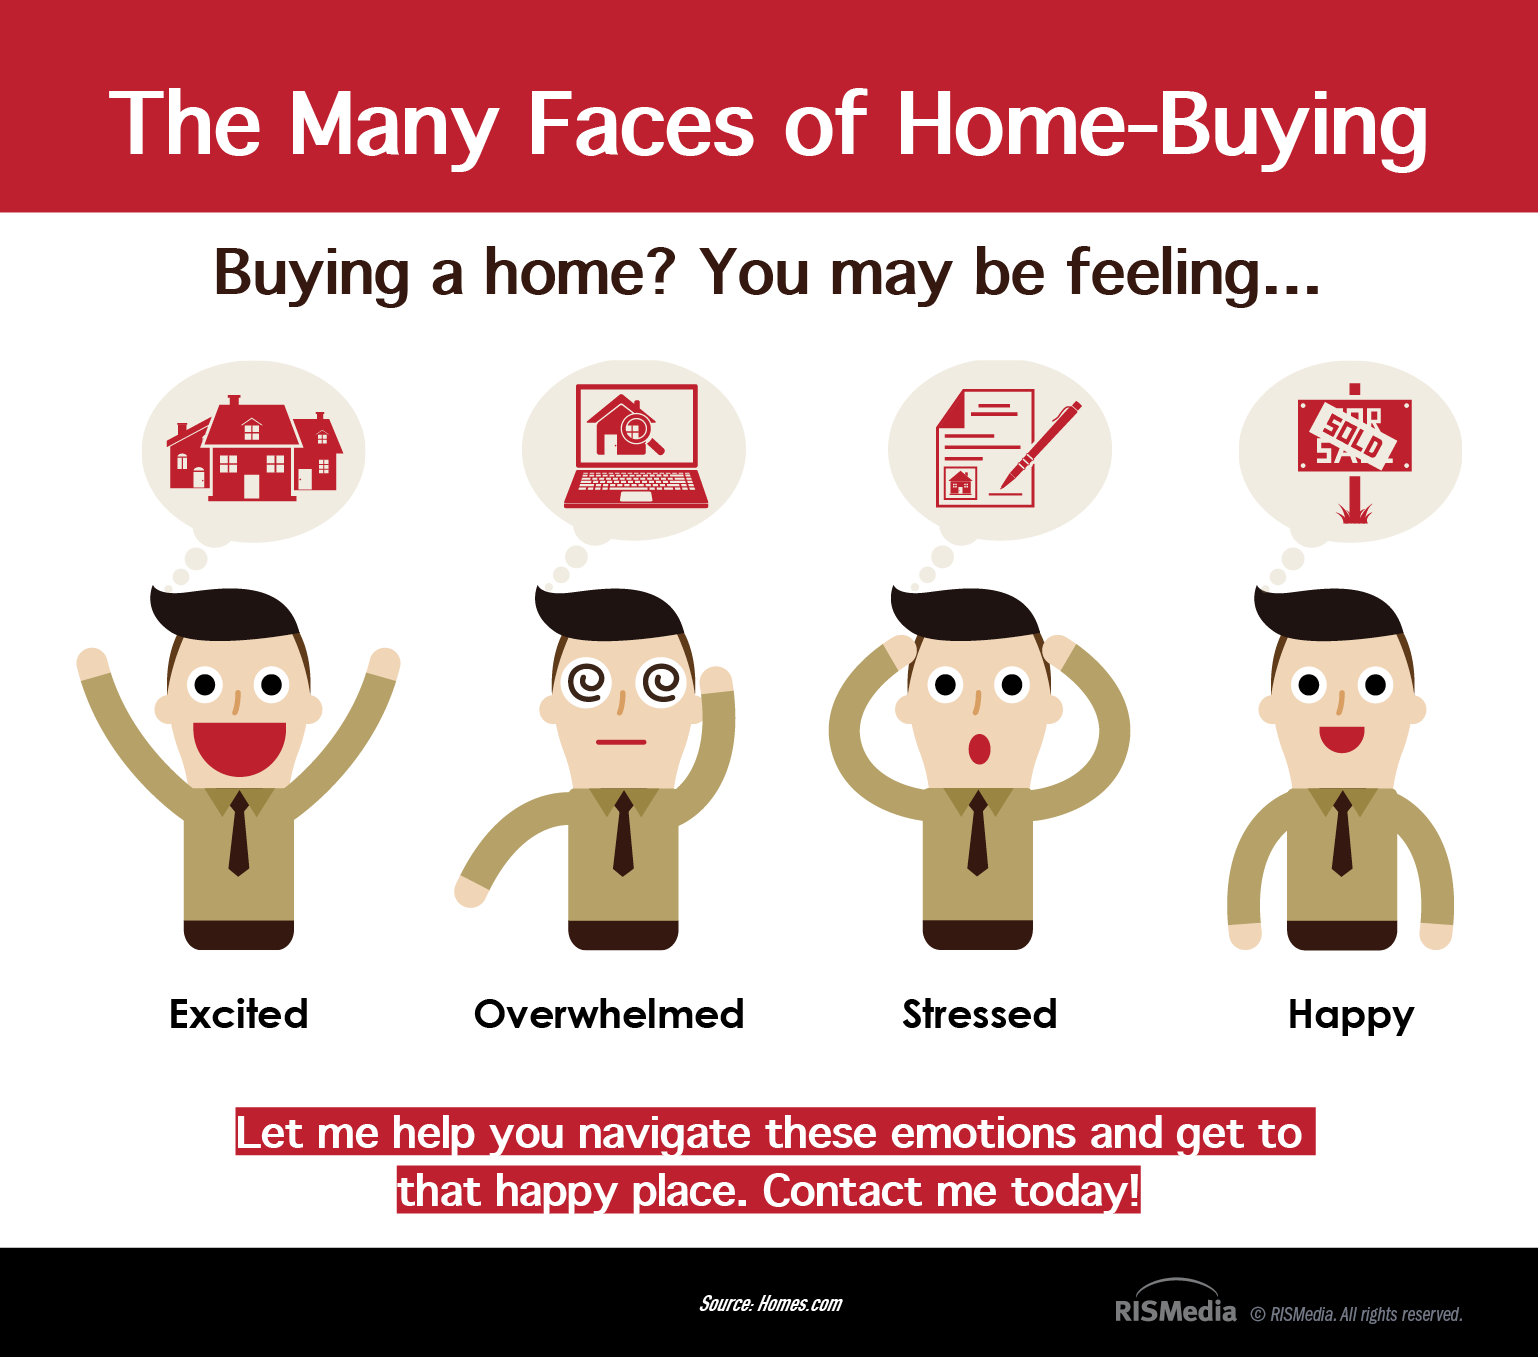 Emotional Home Buying Faces